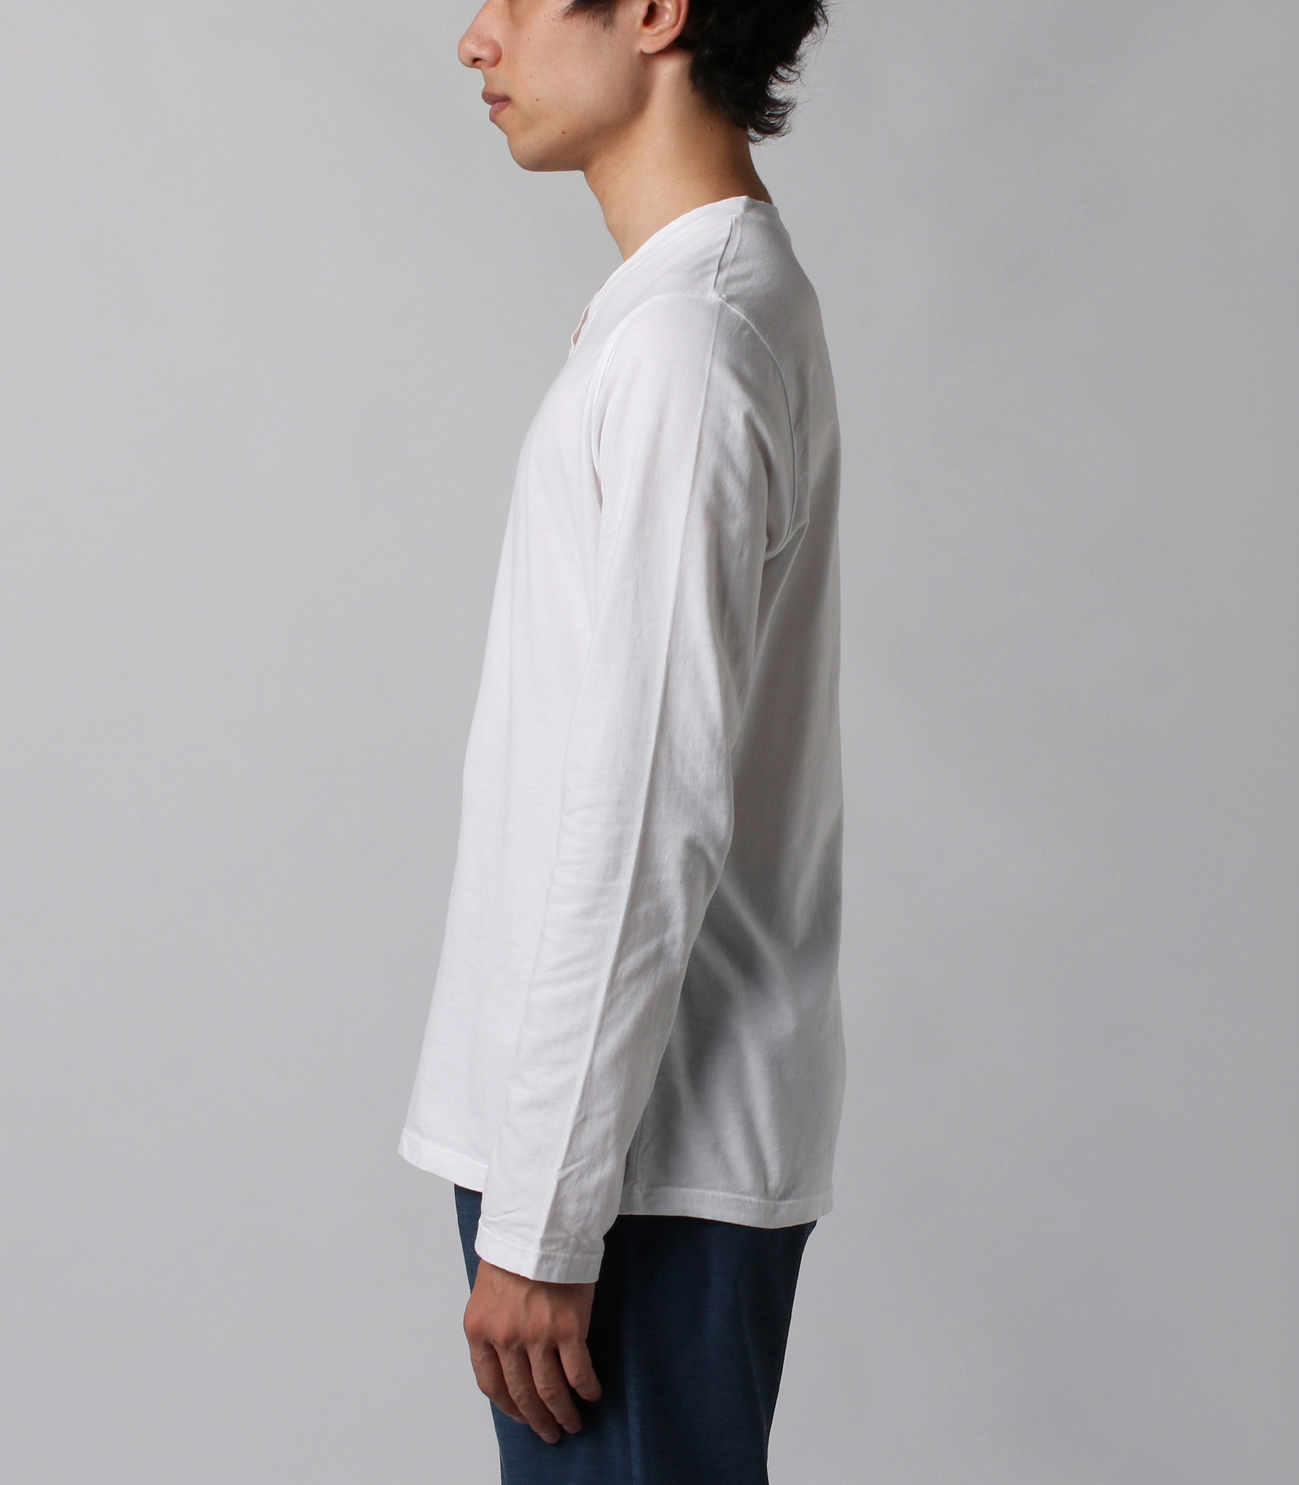 Ryan (new basic line) sanded jersey 詳細画像 granite 3